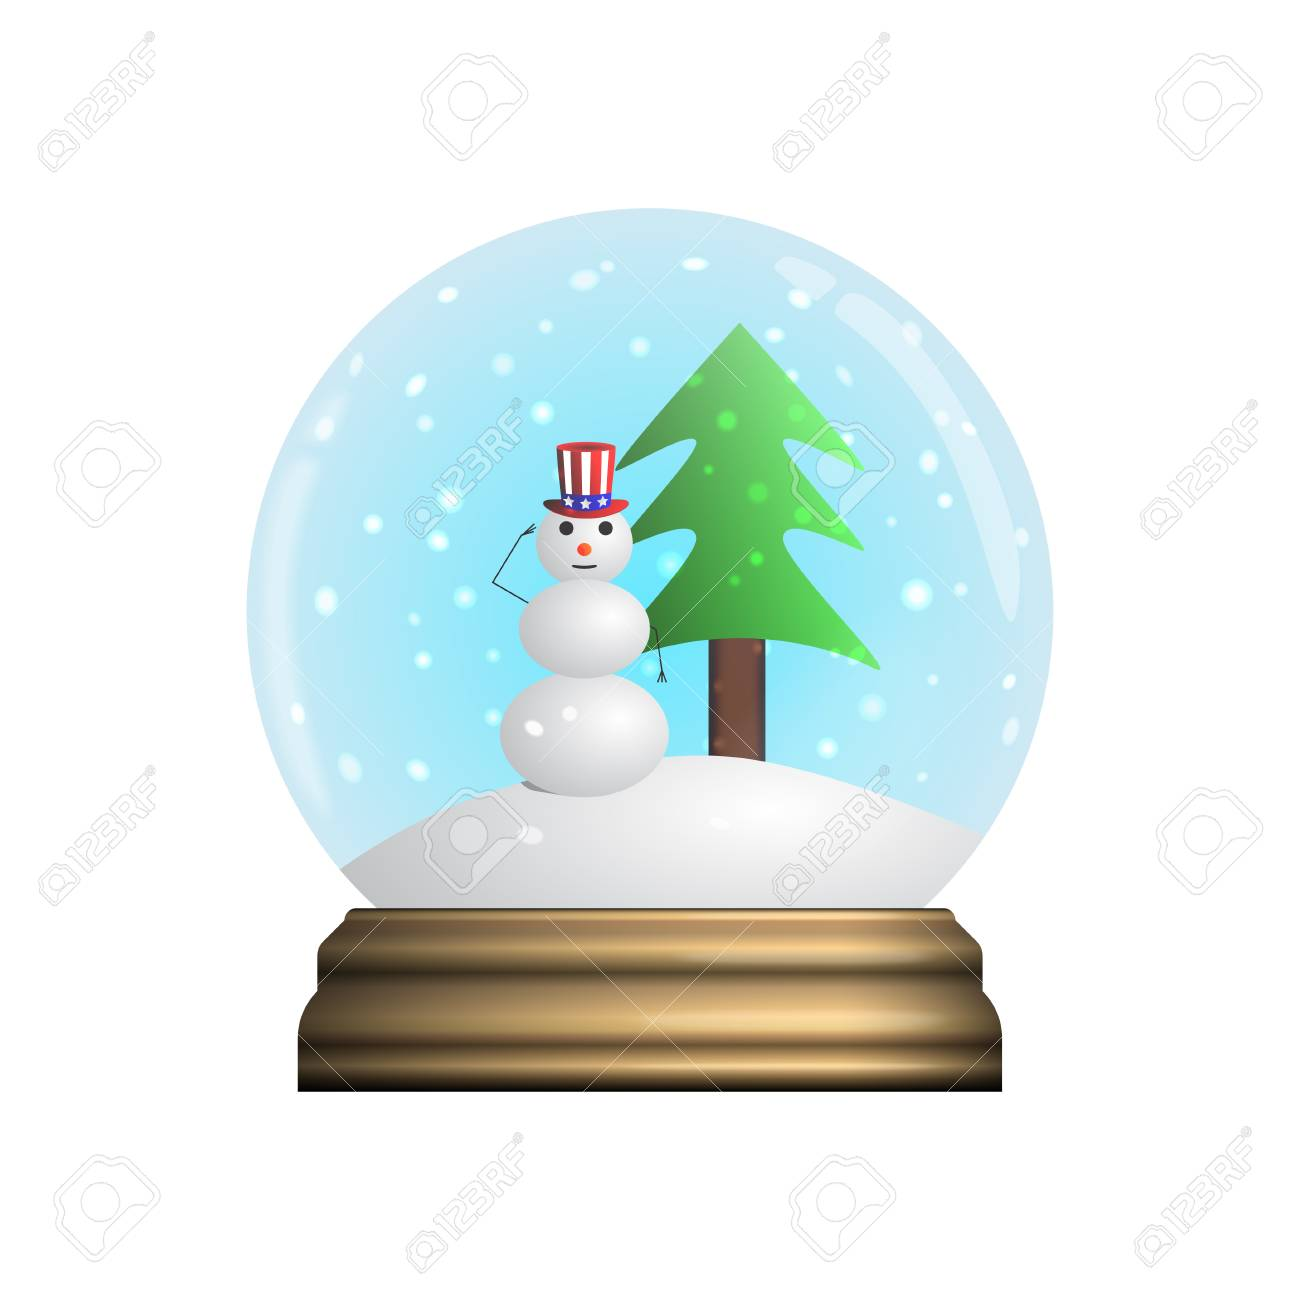 glass snow globe souvenir royalty free cliparts vectors and stock rh 123rf com